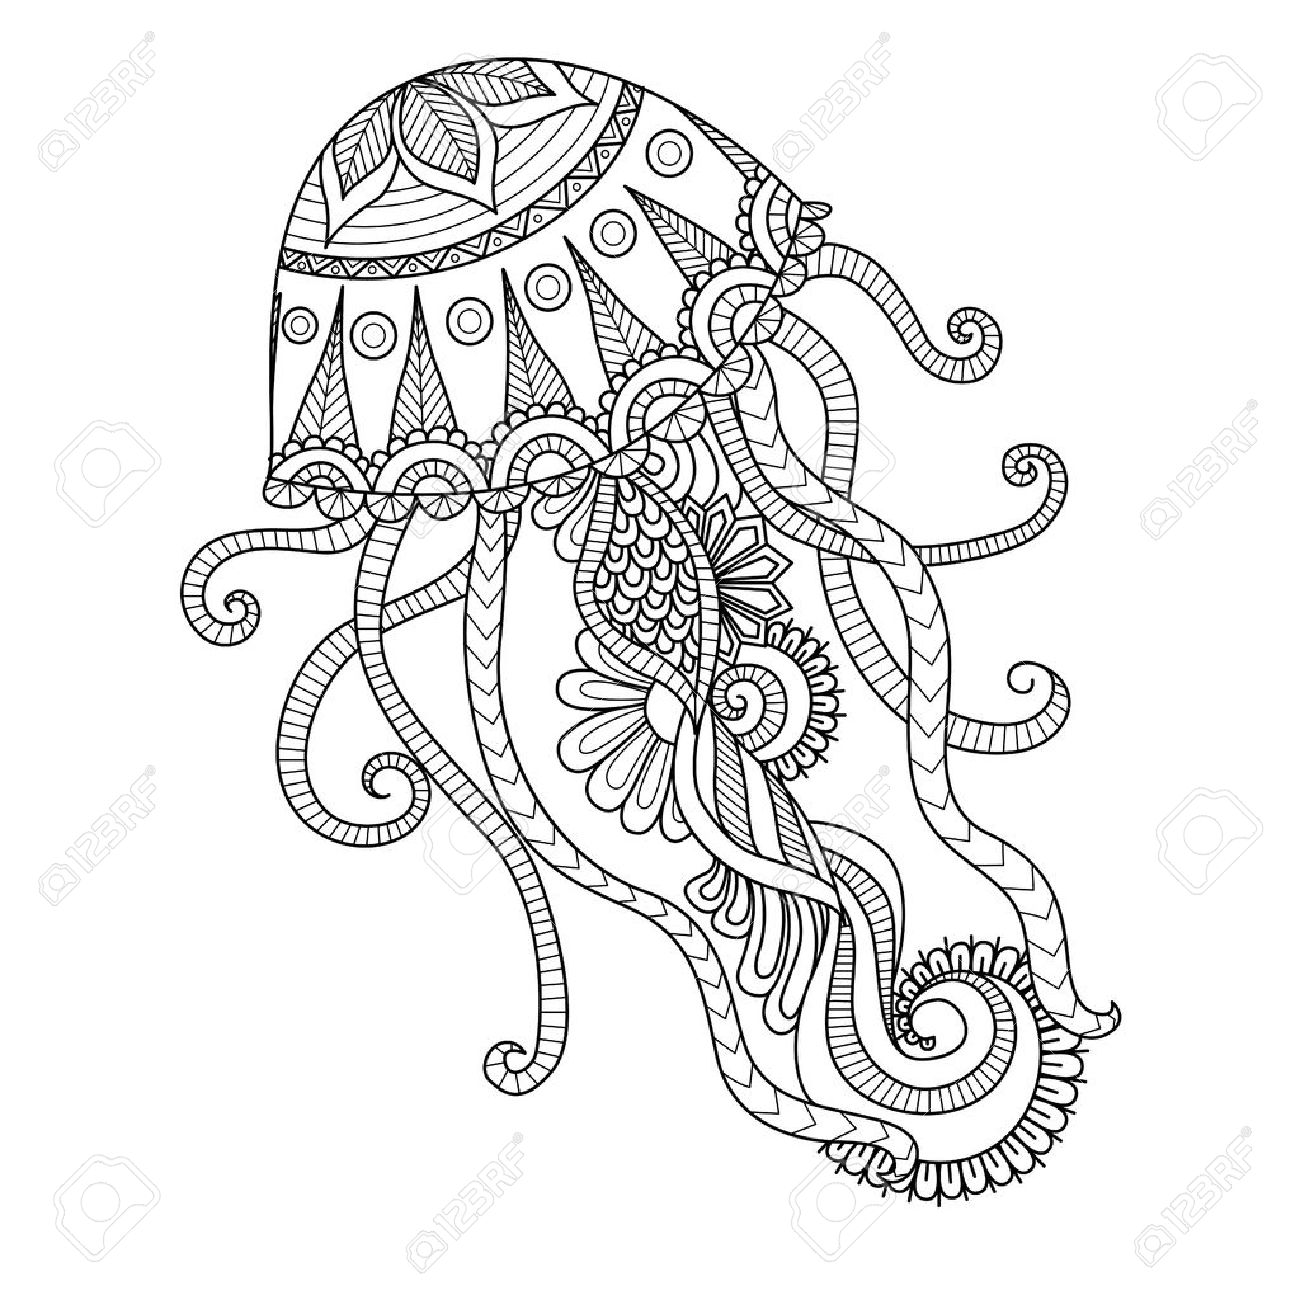 1300x1300 Hand Drawn Jellyfish Style For Coloring Page,t Shirt Design Effect